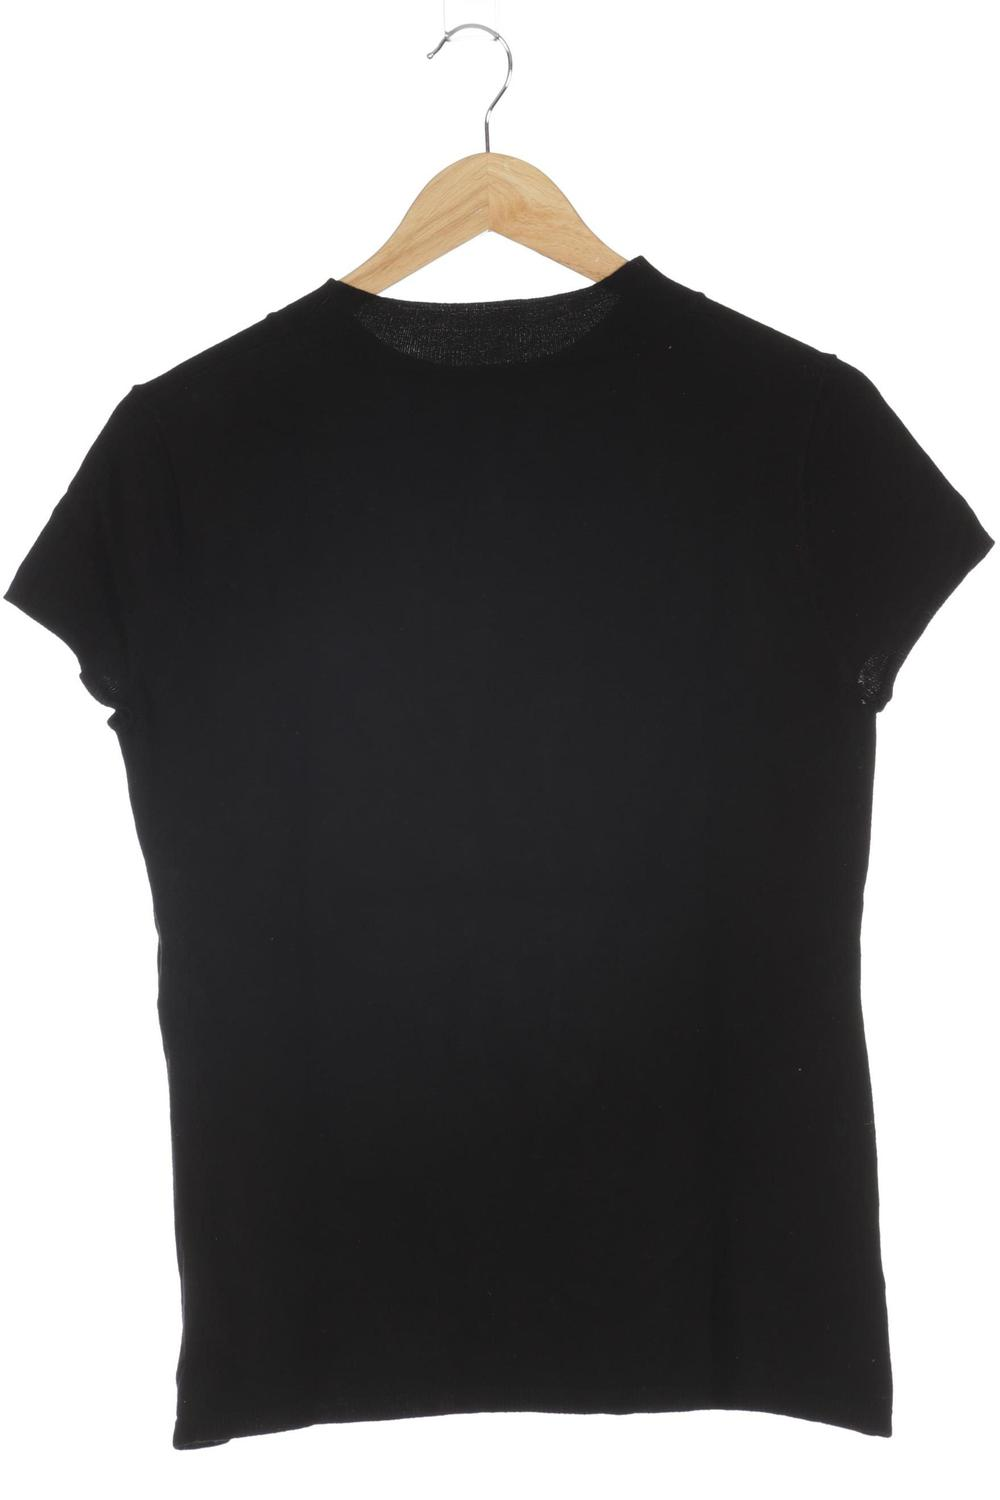 Comma Damen T-Shirt DE 38 Second Hand kaufen V5UUt